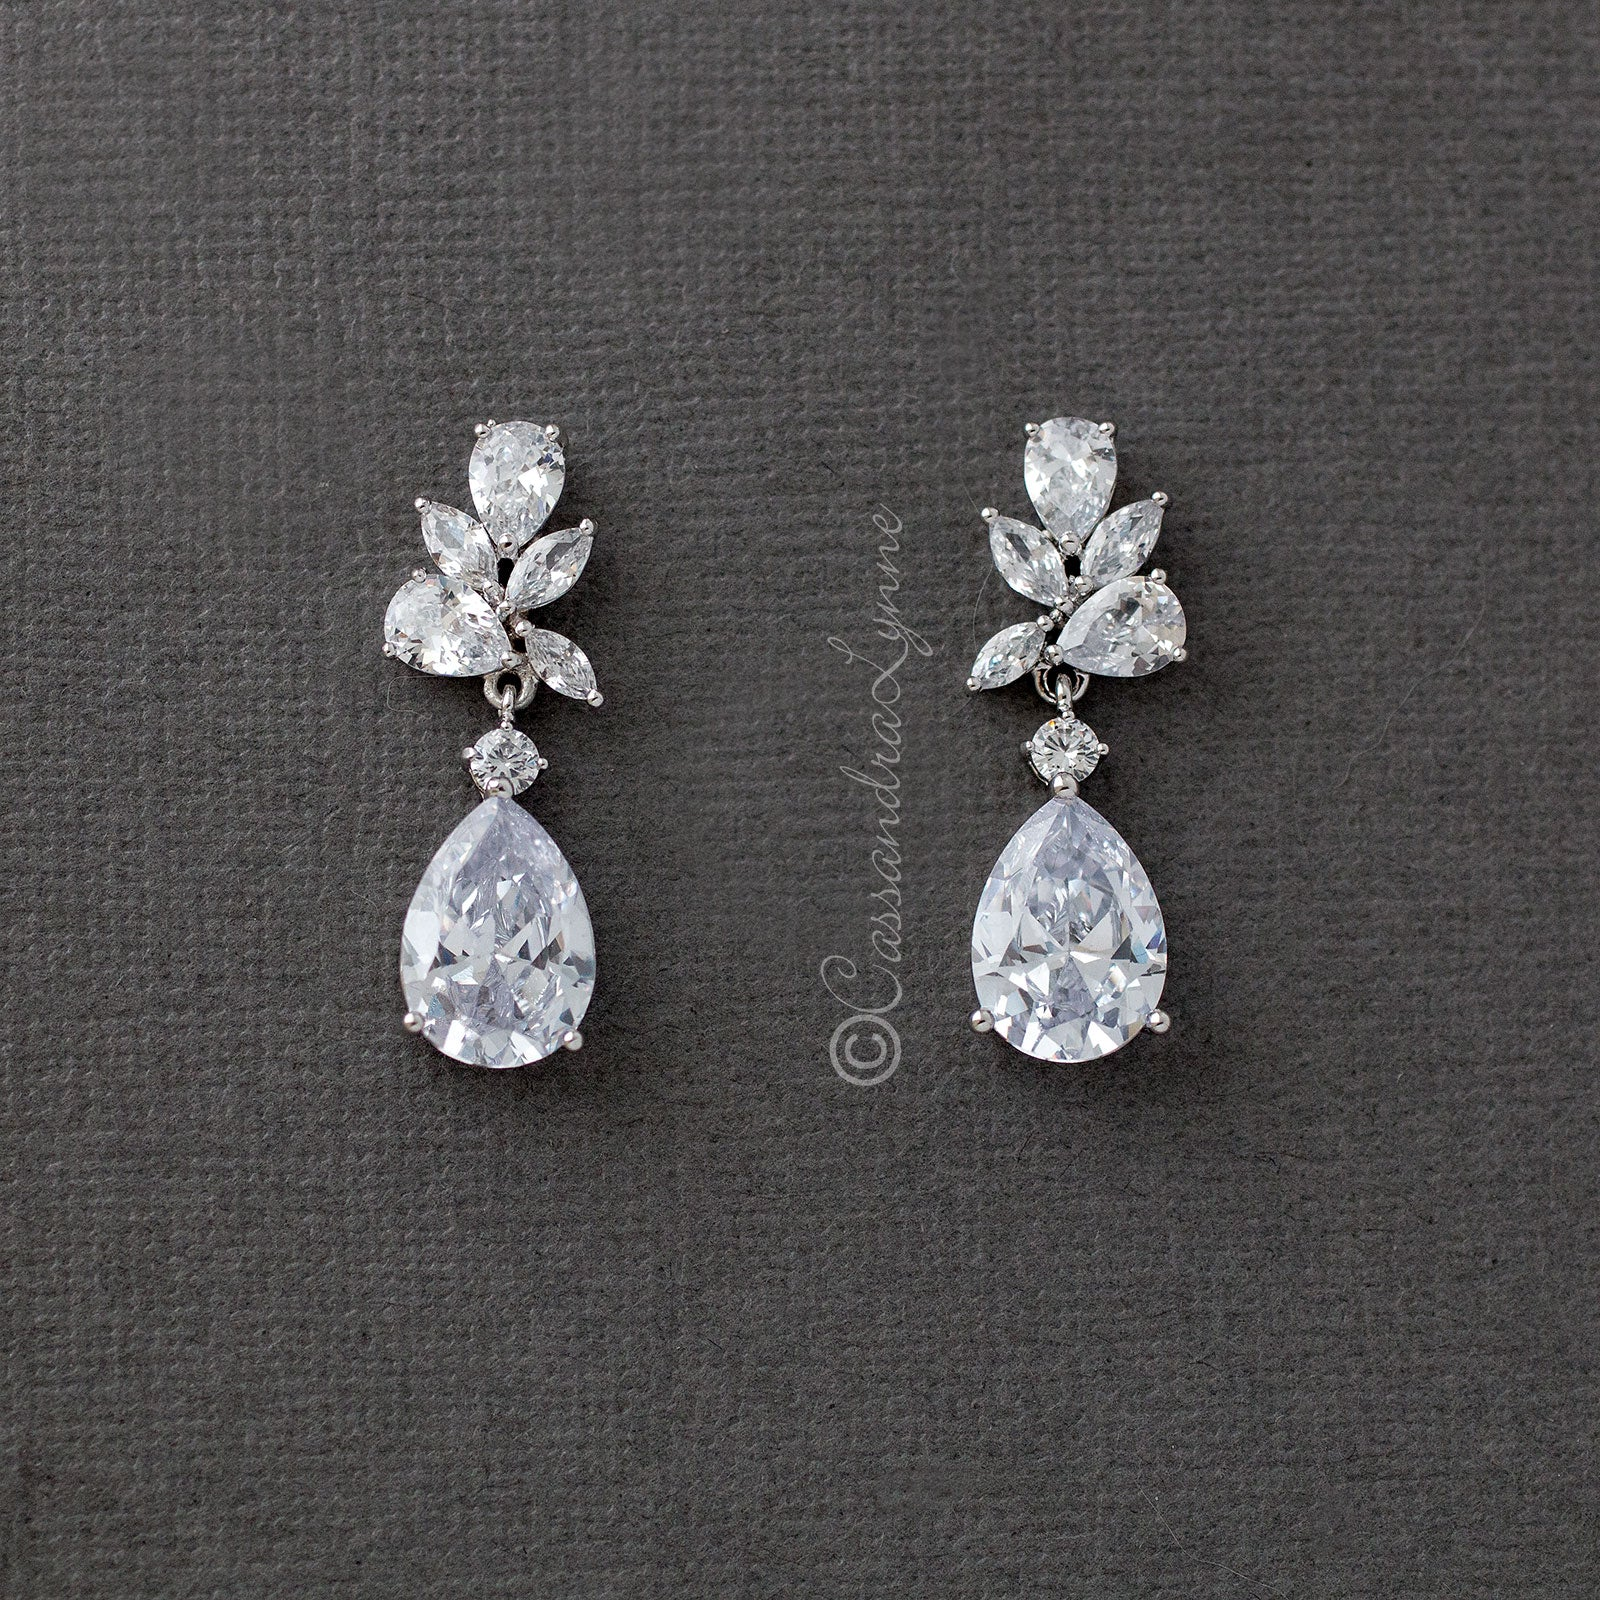 water drop wedding earrings